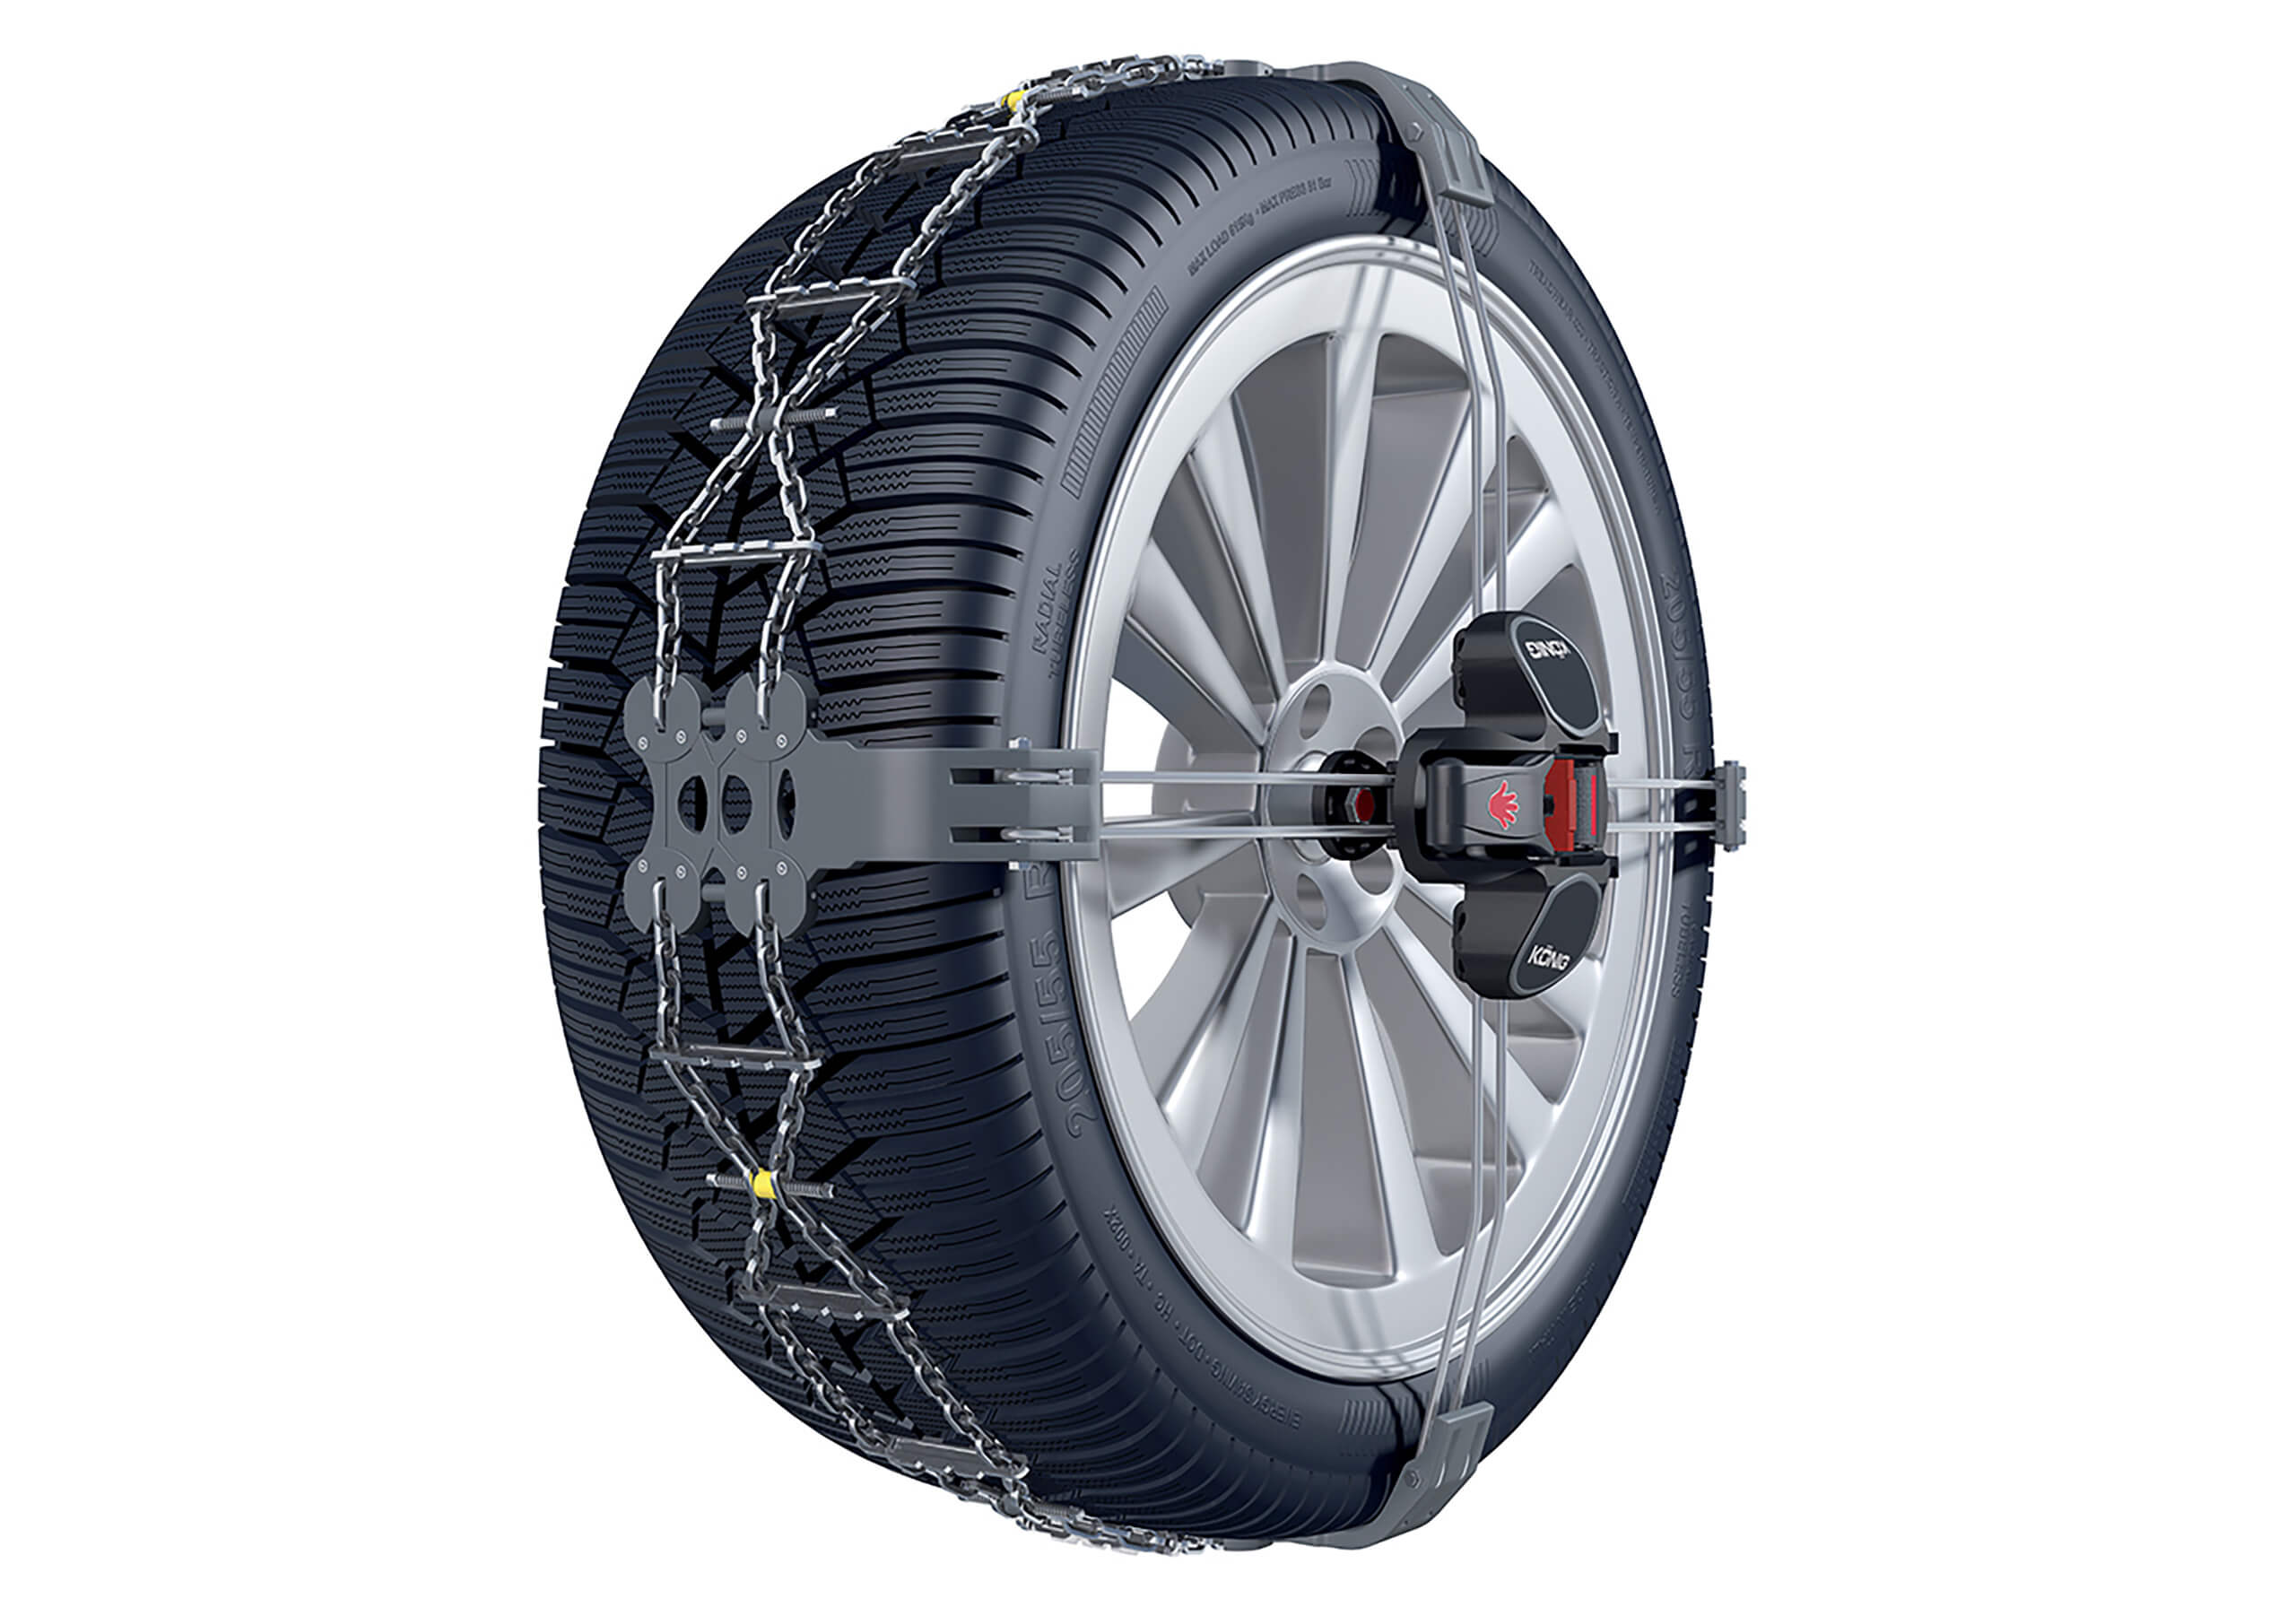 Ford Focus estate (2008 to 2011):König K-Summit snow chains (pair) no. K-Summit 23